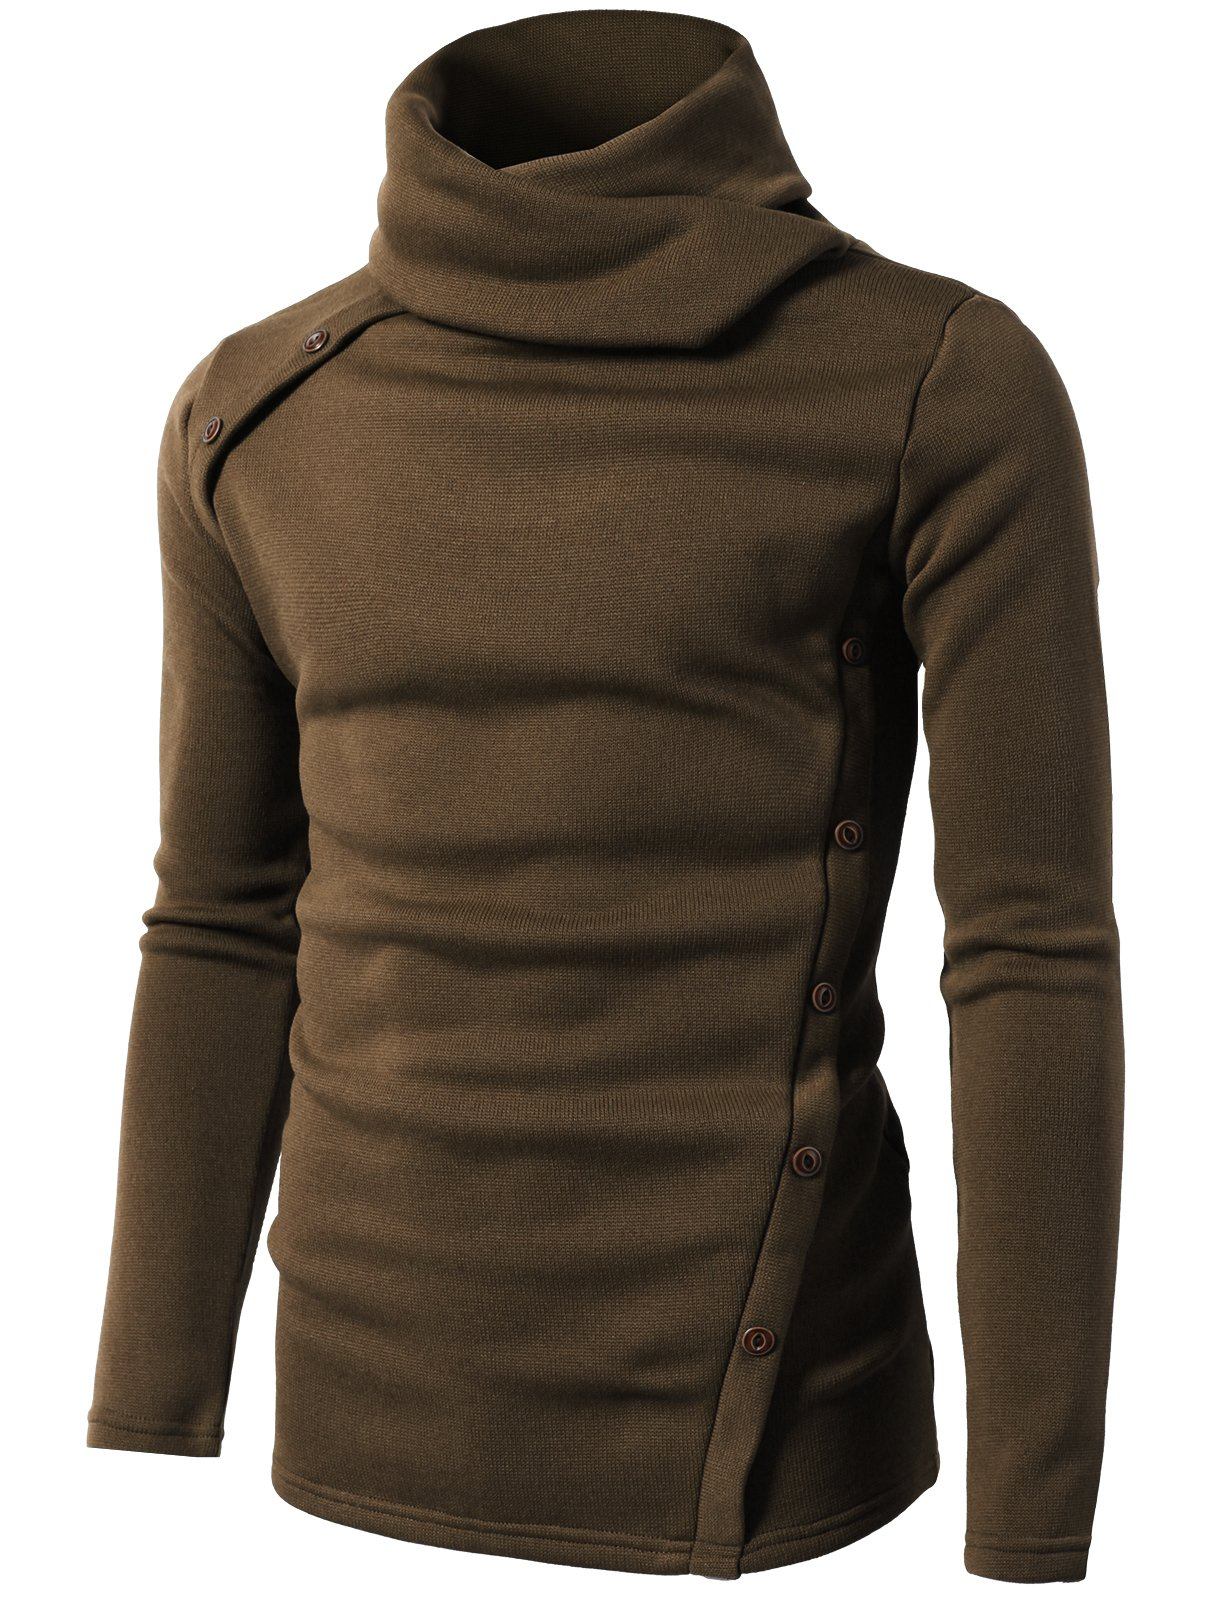 H2H Men's Fine Gauge Solid 1/4 Zip Sweater Brown US M/Asia L (CMTTL065)